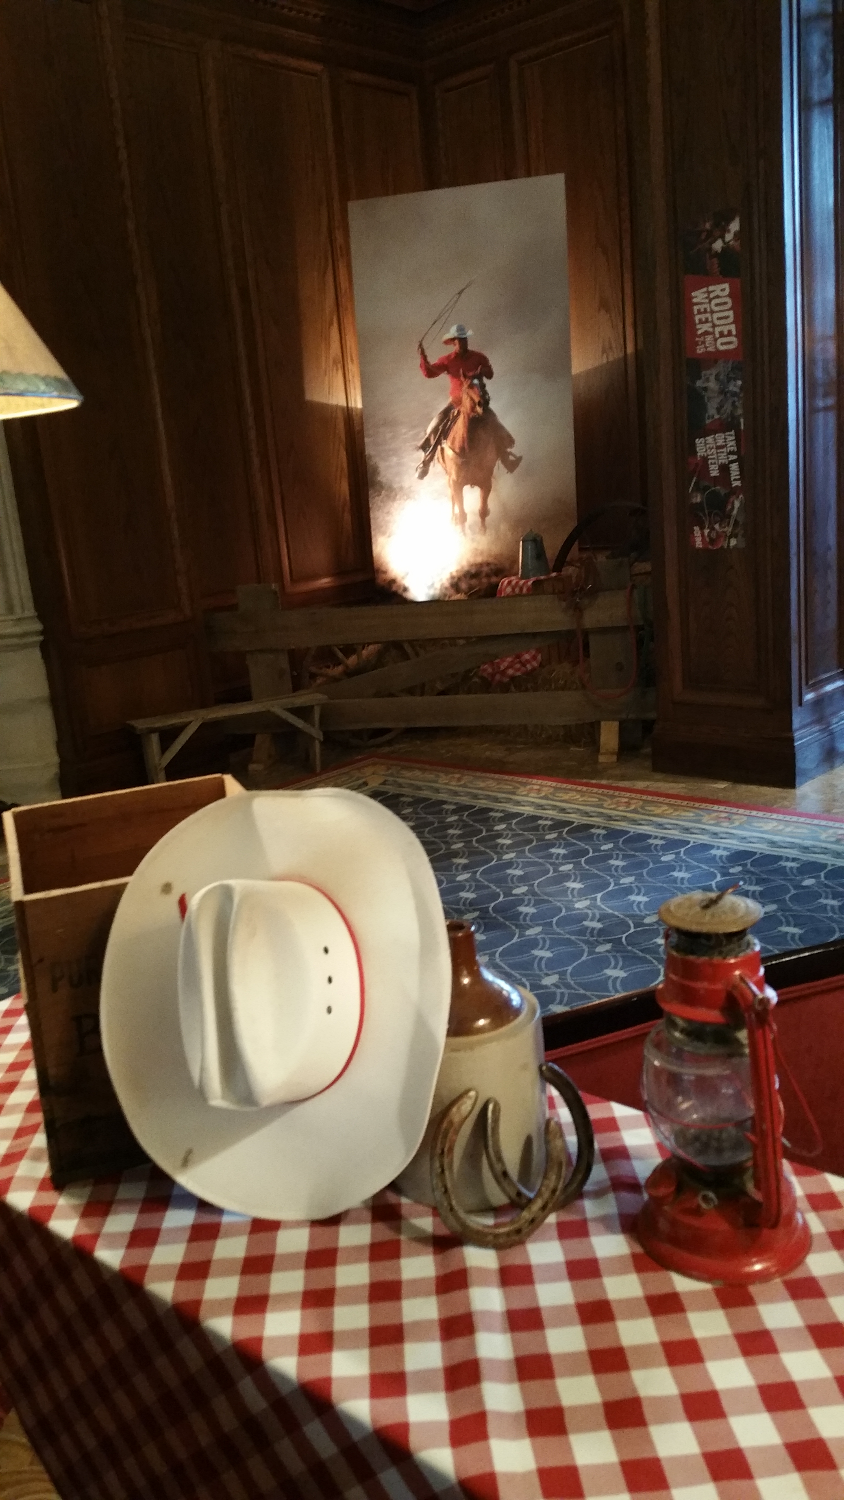 Rodeo decor at Hotel MacDonald